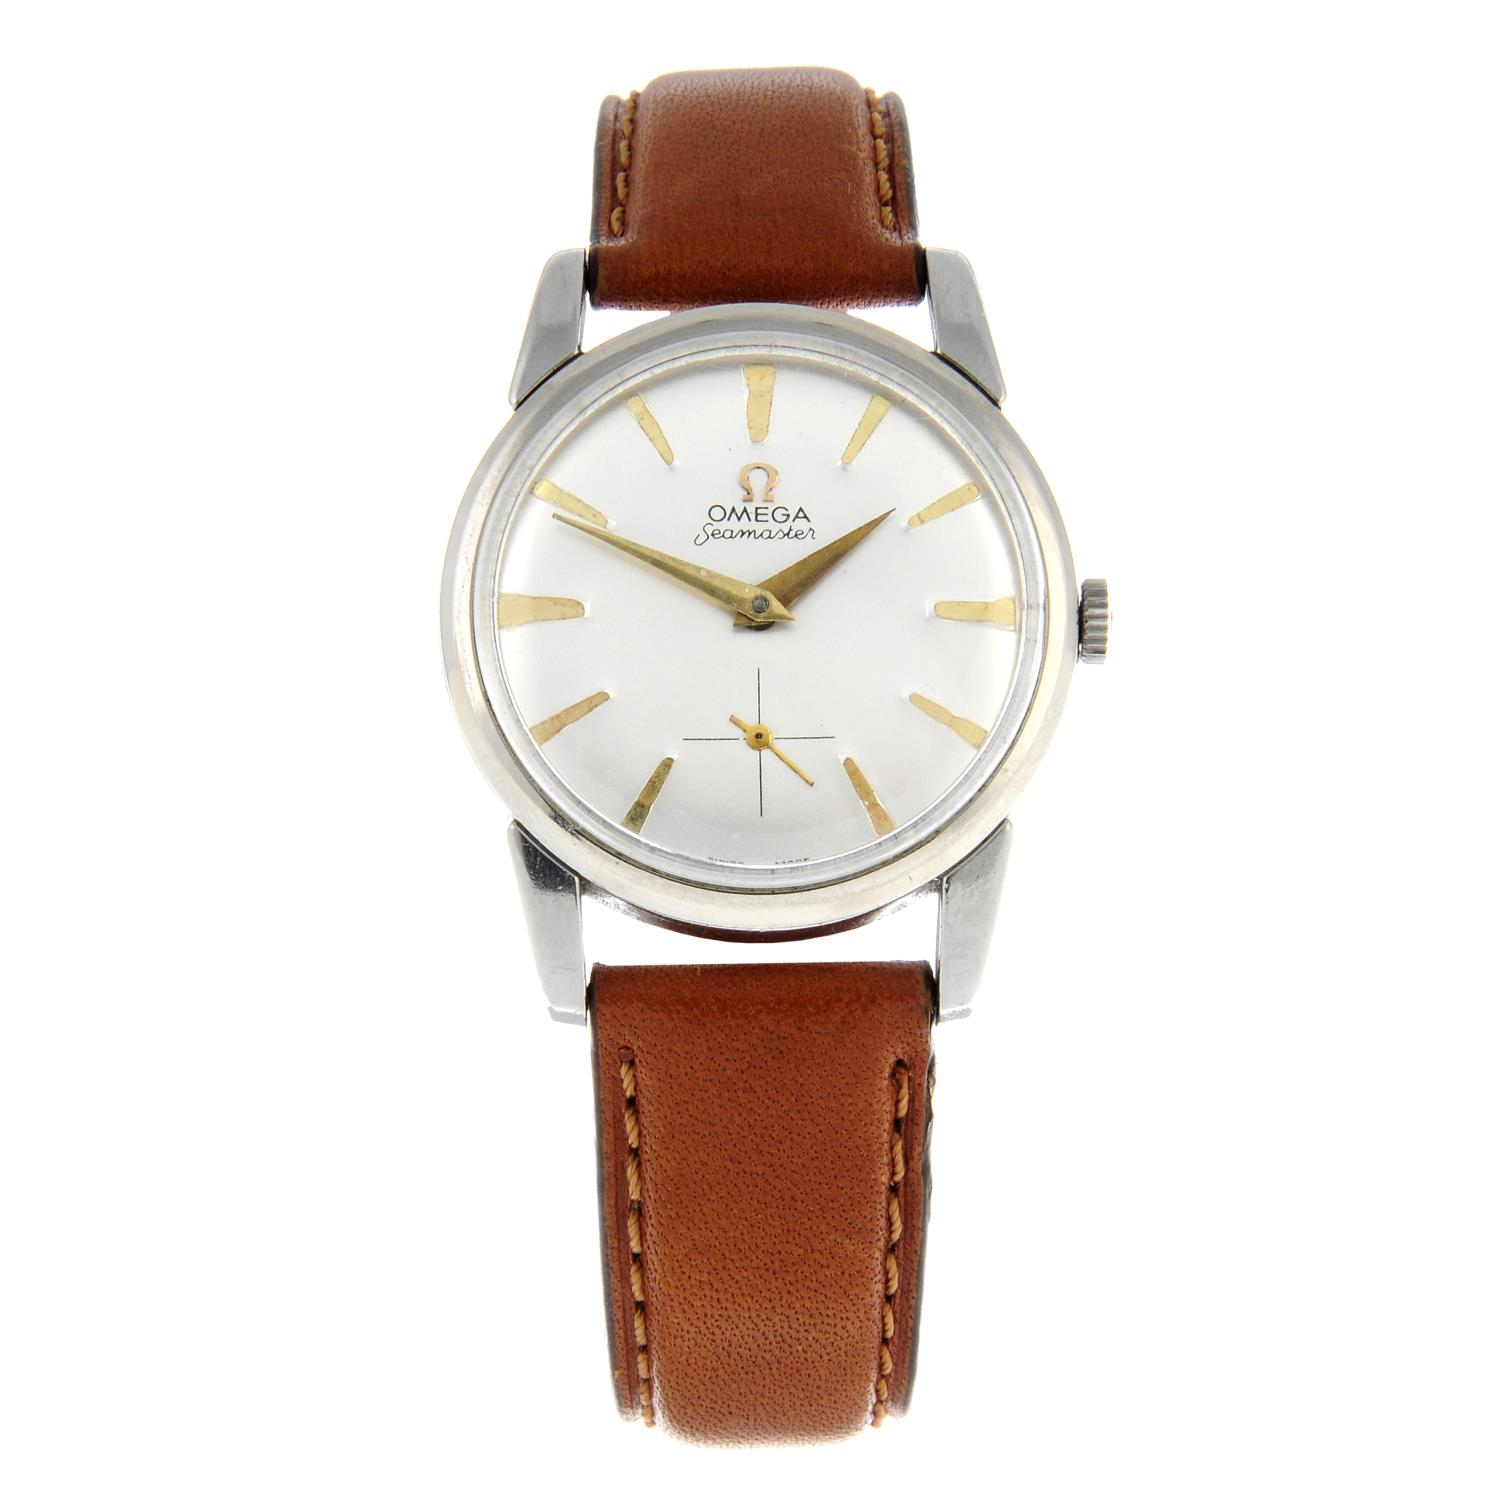 OMEGA - a Seamaster wrist watch.Stainless steel case.